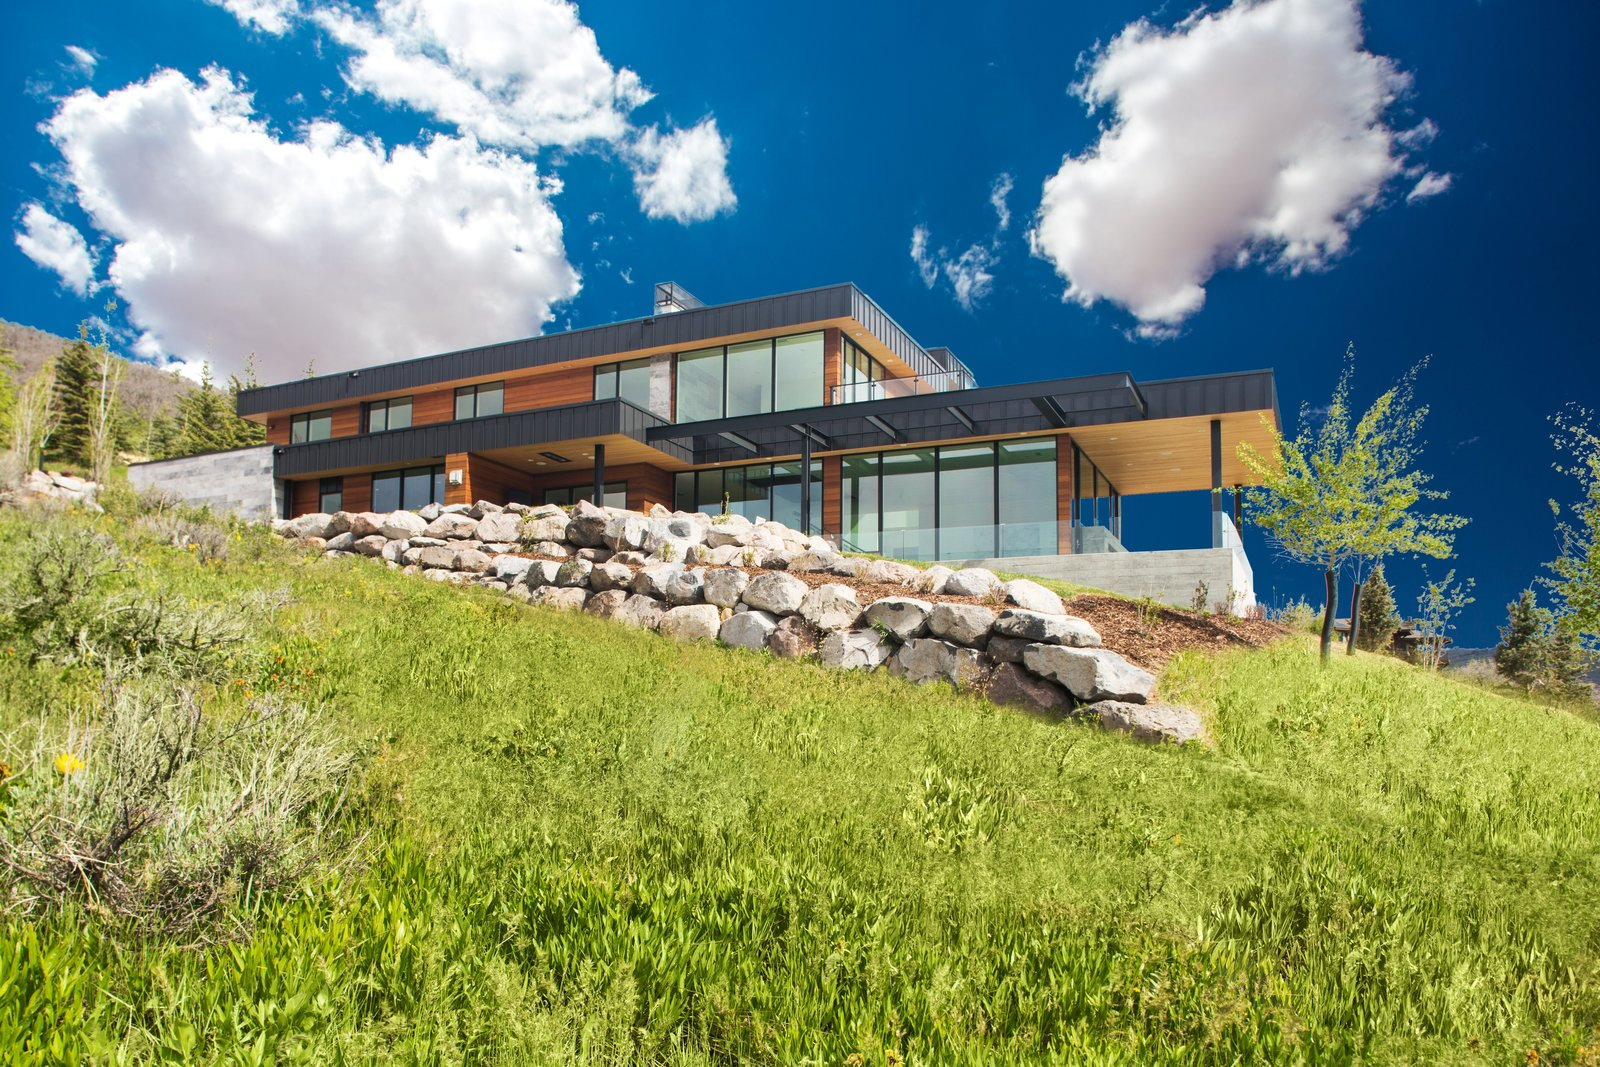 Exterior, Metal Roof Material, Stone Siding Material, House Building Type, Wood Siding Material, Metal Siding Material, and Flat RoofLine Built on just over an acre, no view is obstructed.  Purple Sage